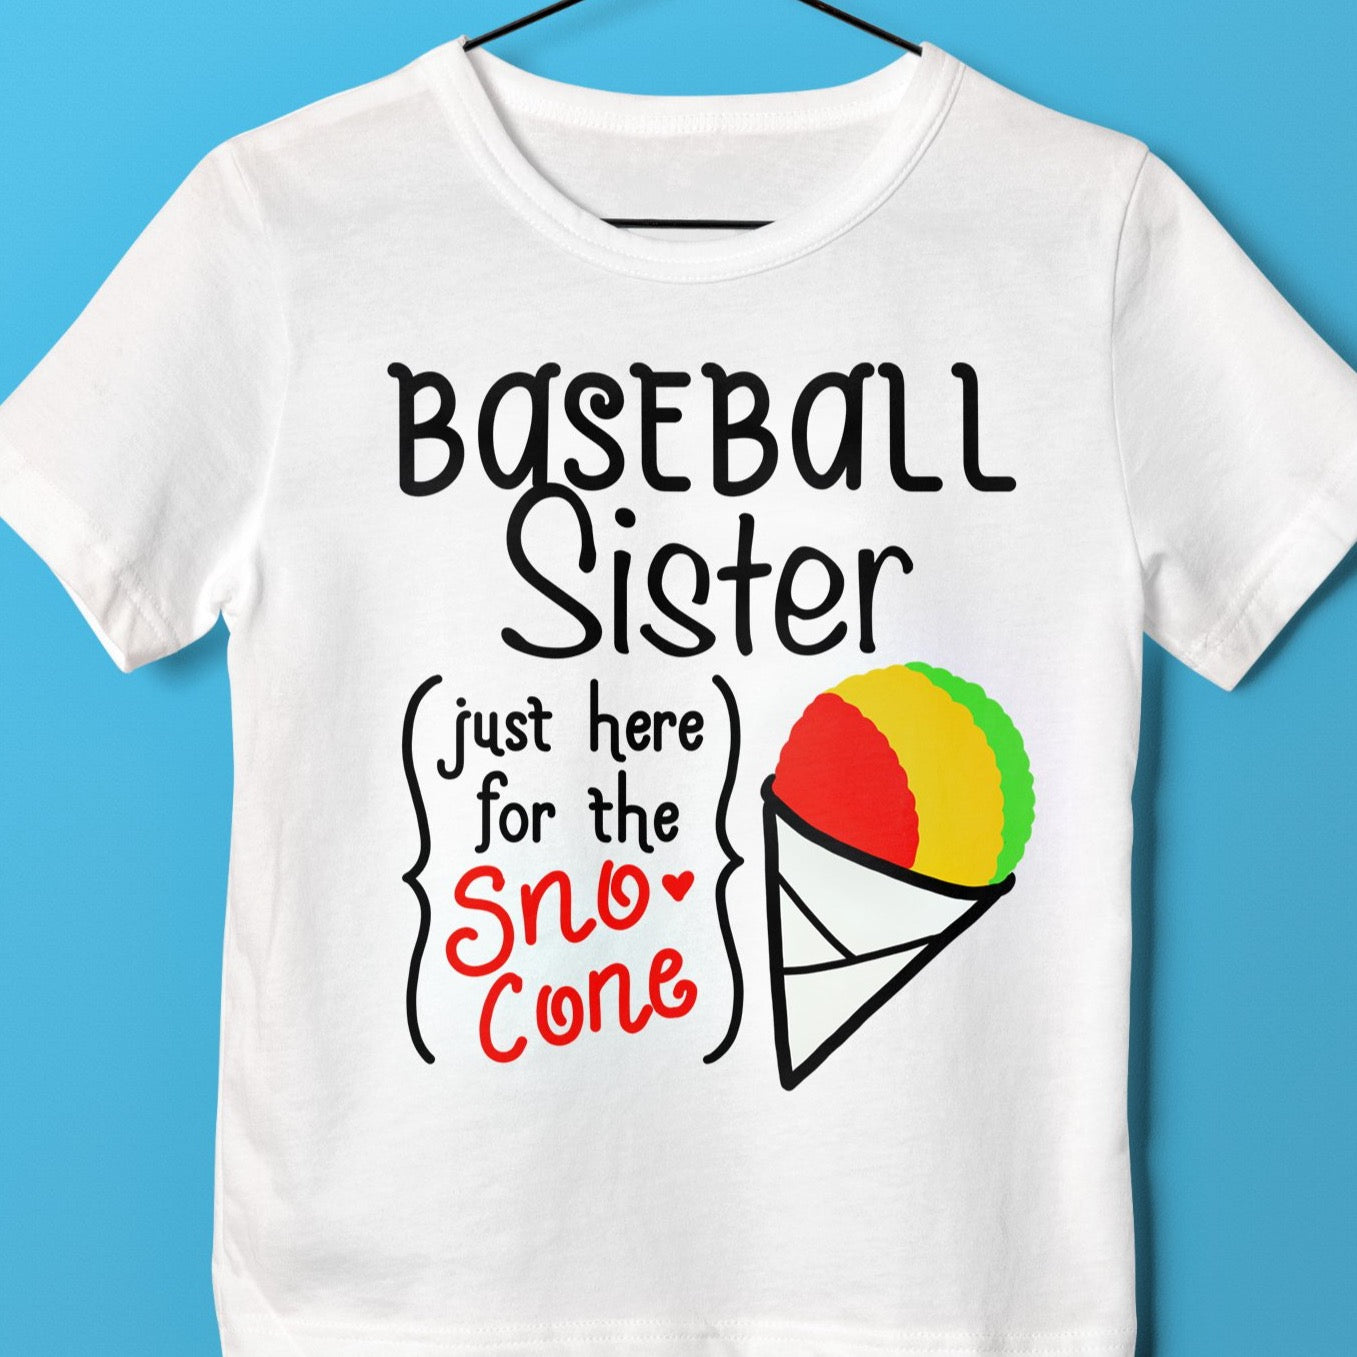 BASEBALL SISTER SVG, Just Here for the Sno Cone, Funny Baseball Sister SVG File, Cute Baseball Sister Shirt Decal File, Svg Baseball Sister